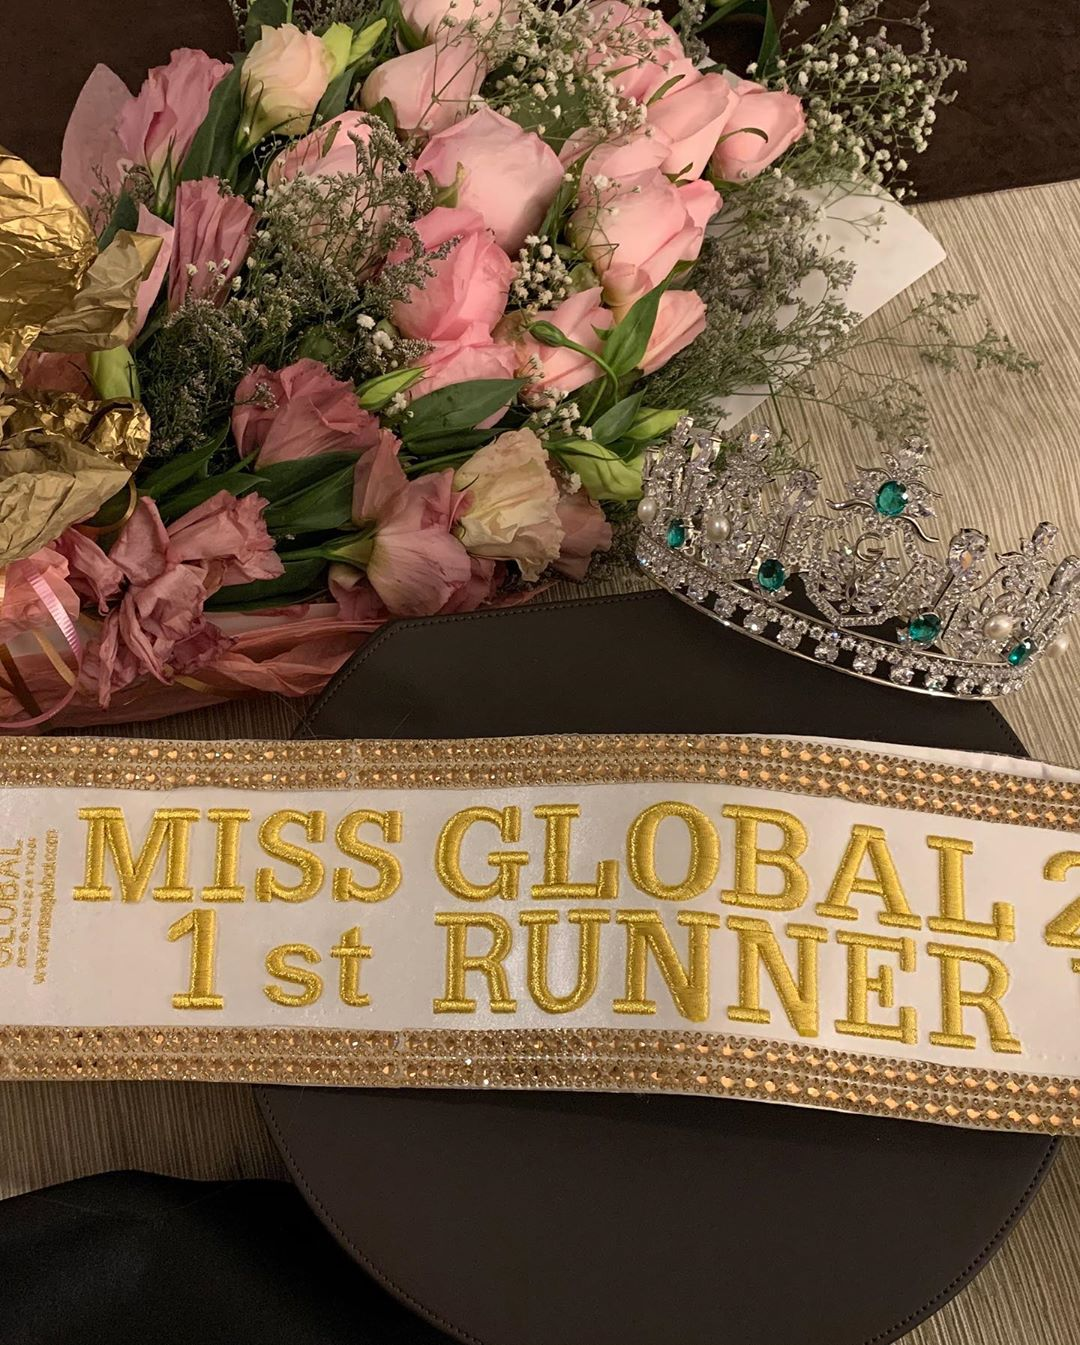 hany portocarrero, 1st runner-up de miss global 2019. 80889110